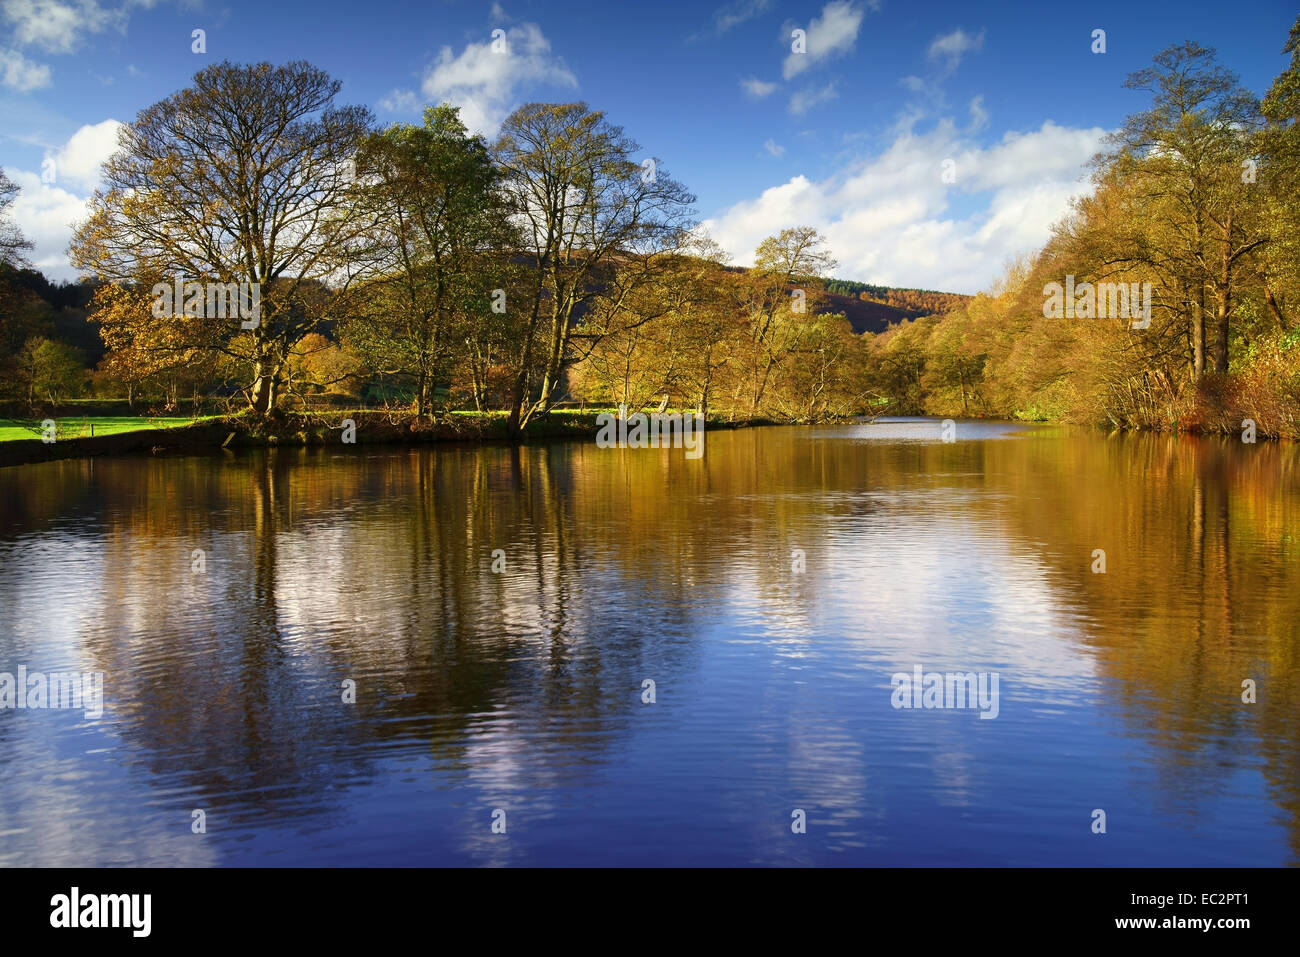 UK,Derbyshire,Peak District,Bamford,Fiume Derwent riflessioni Foto Stock